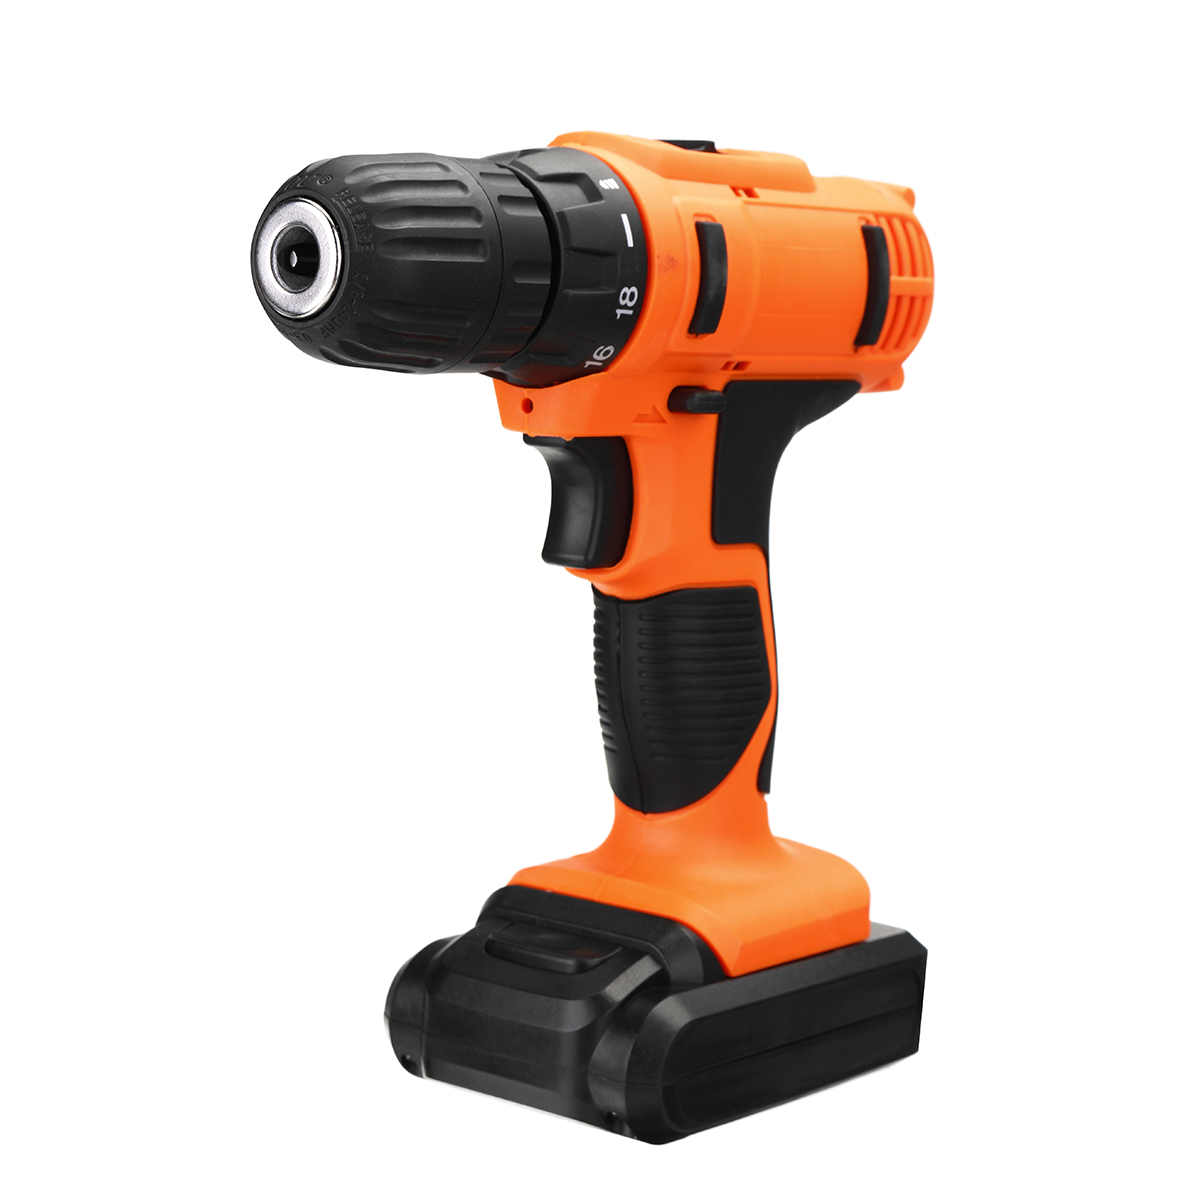 18-Volt DC Lithium-Ion Battery 2-Speed Electric Cordless Drill Mini Screwdriver Wireless Power Driver18-Volt DC Lithium-Ion Battery 2-Speed Electric Cordless Drill Mini Screwdriver Wireless Power Driver